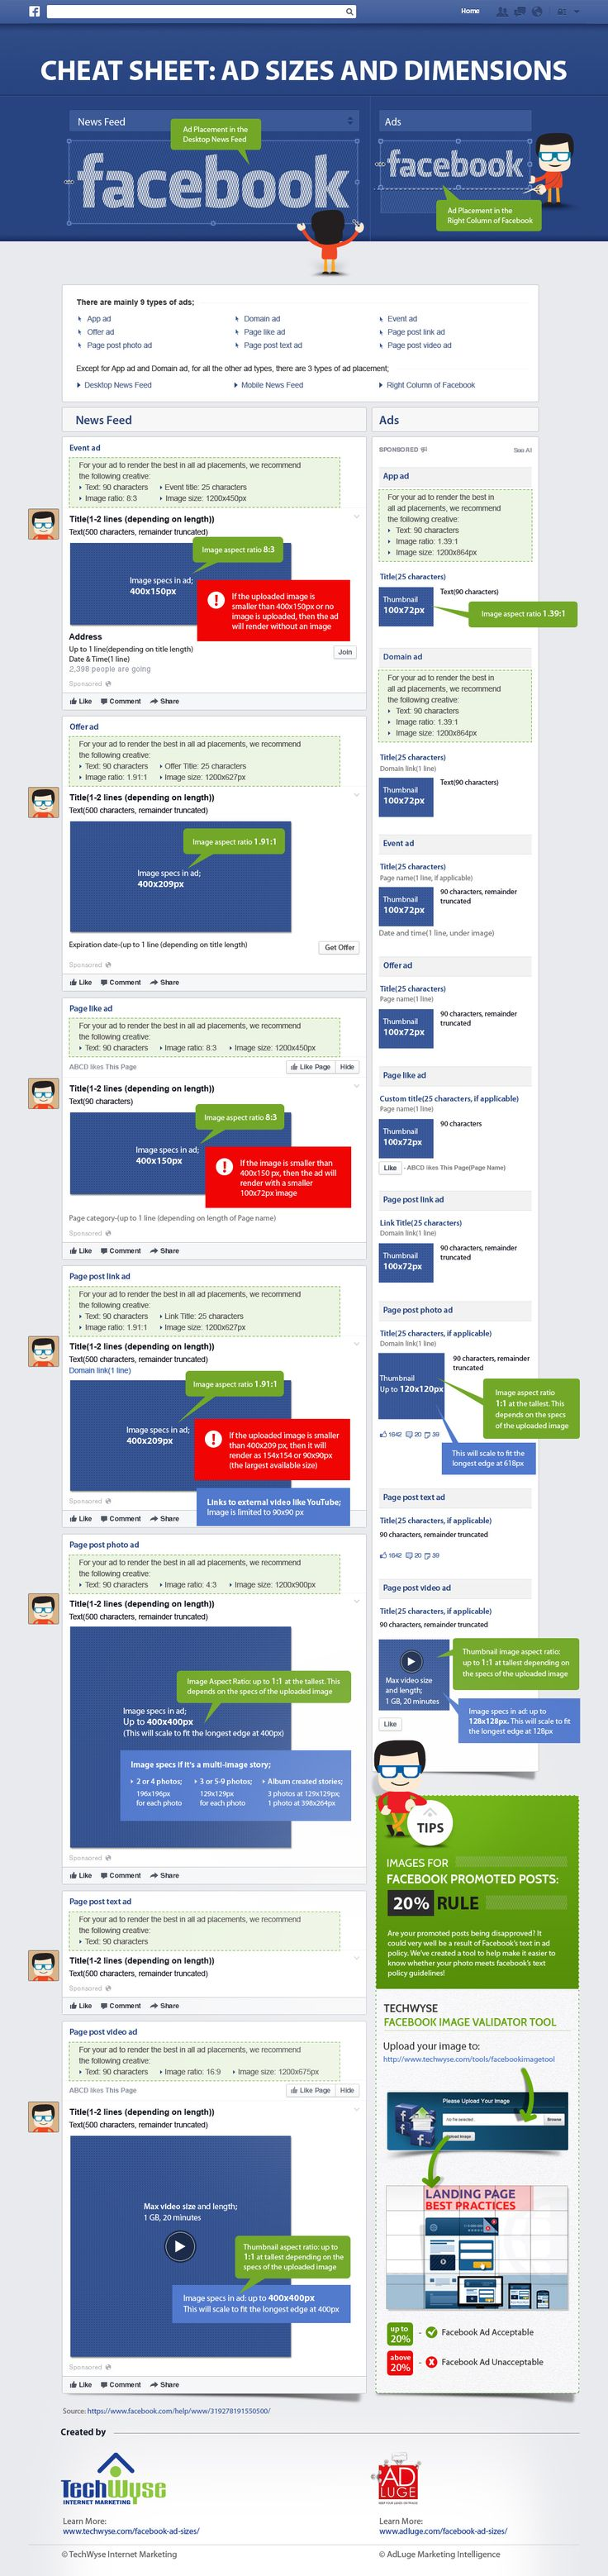 INFOGRAPHIC: Where To Find Dimensions, Specifications For Facebook Ad Units